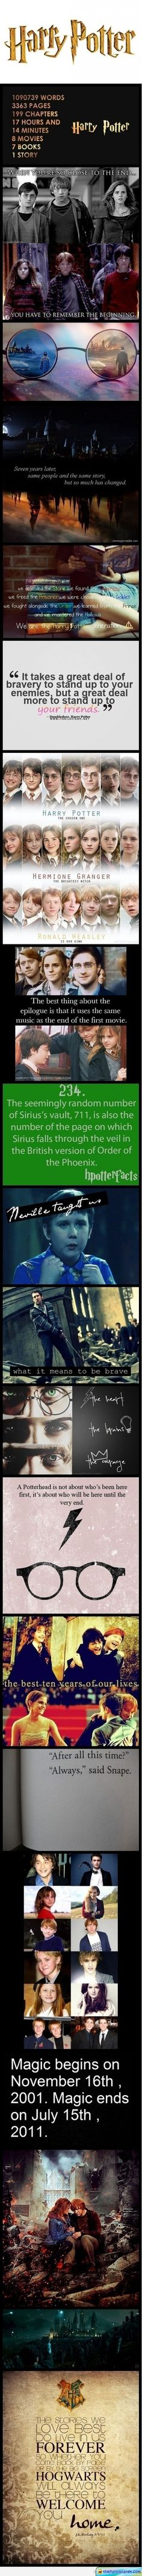 Harry Potter Forever @Ellie Peterson EPIC